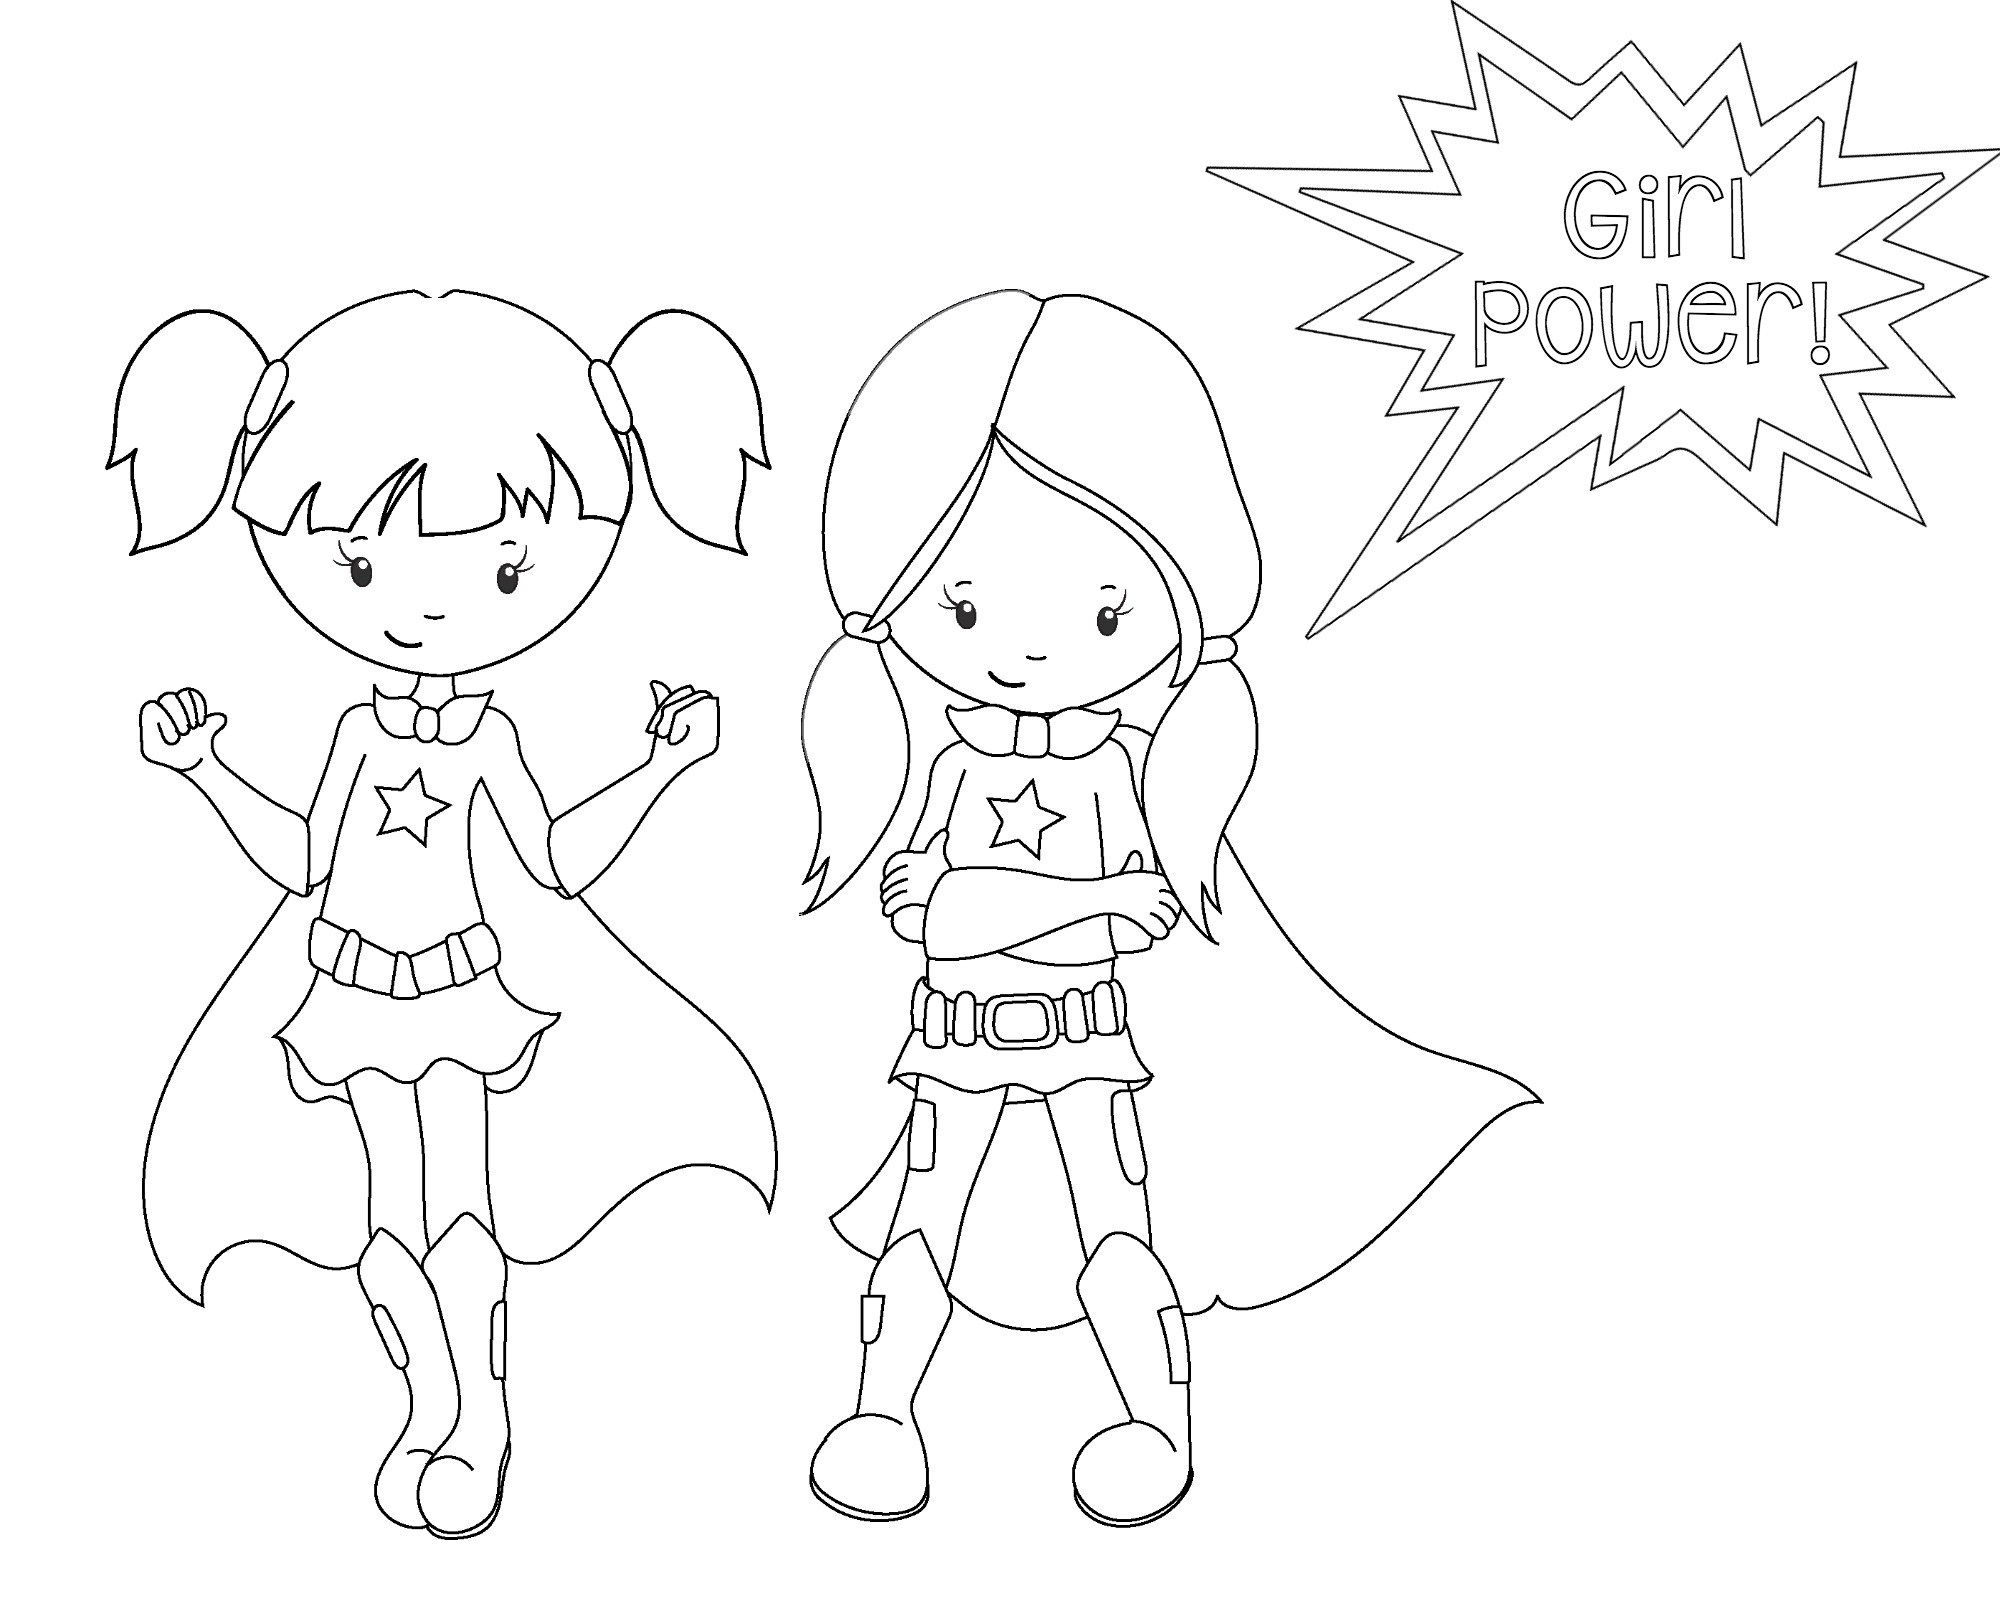 Kid Coloring Pages Free Printable Superhero Coloring Sheets For Kids Crazy Little